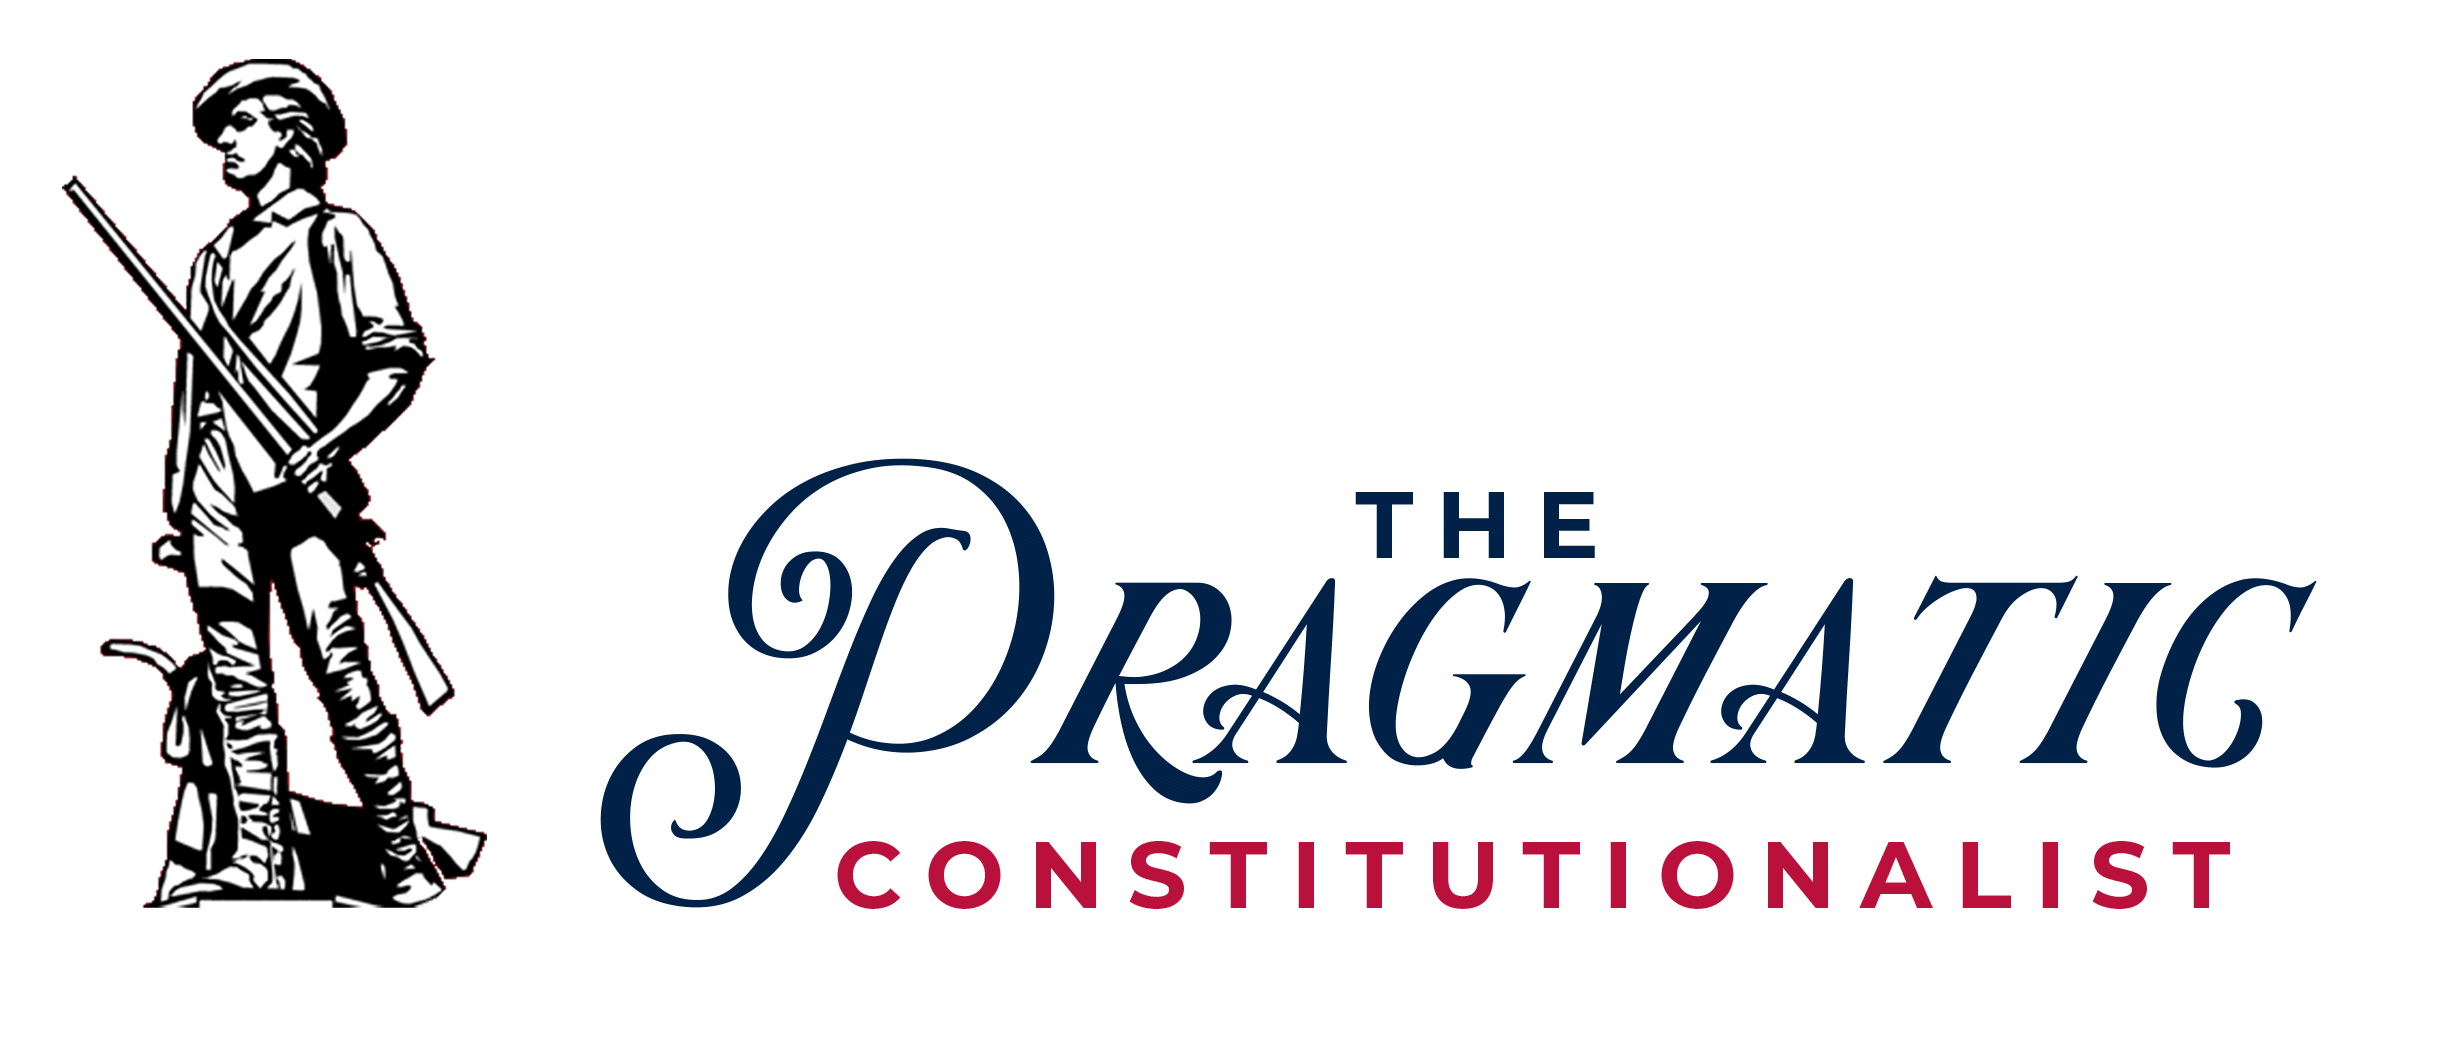 The Pragmatic Constitutionalist